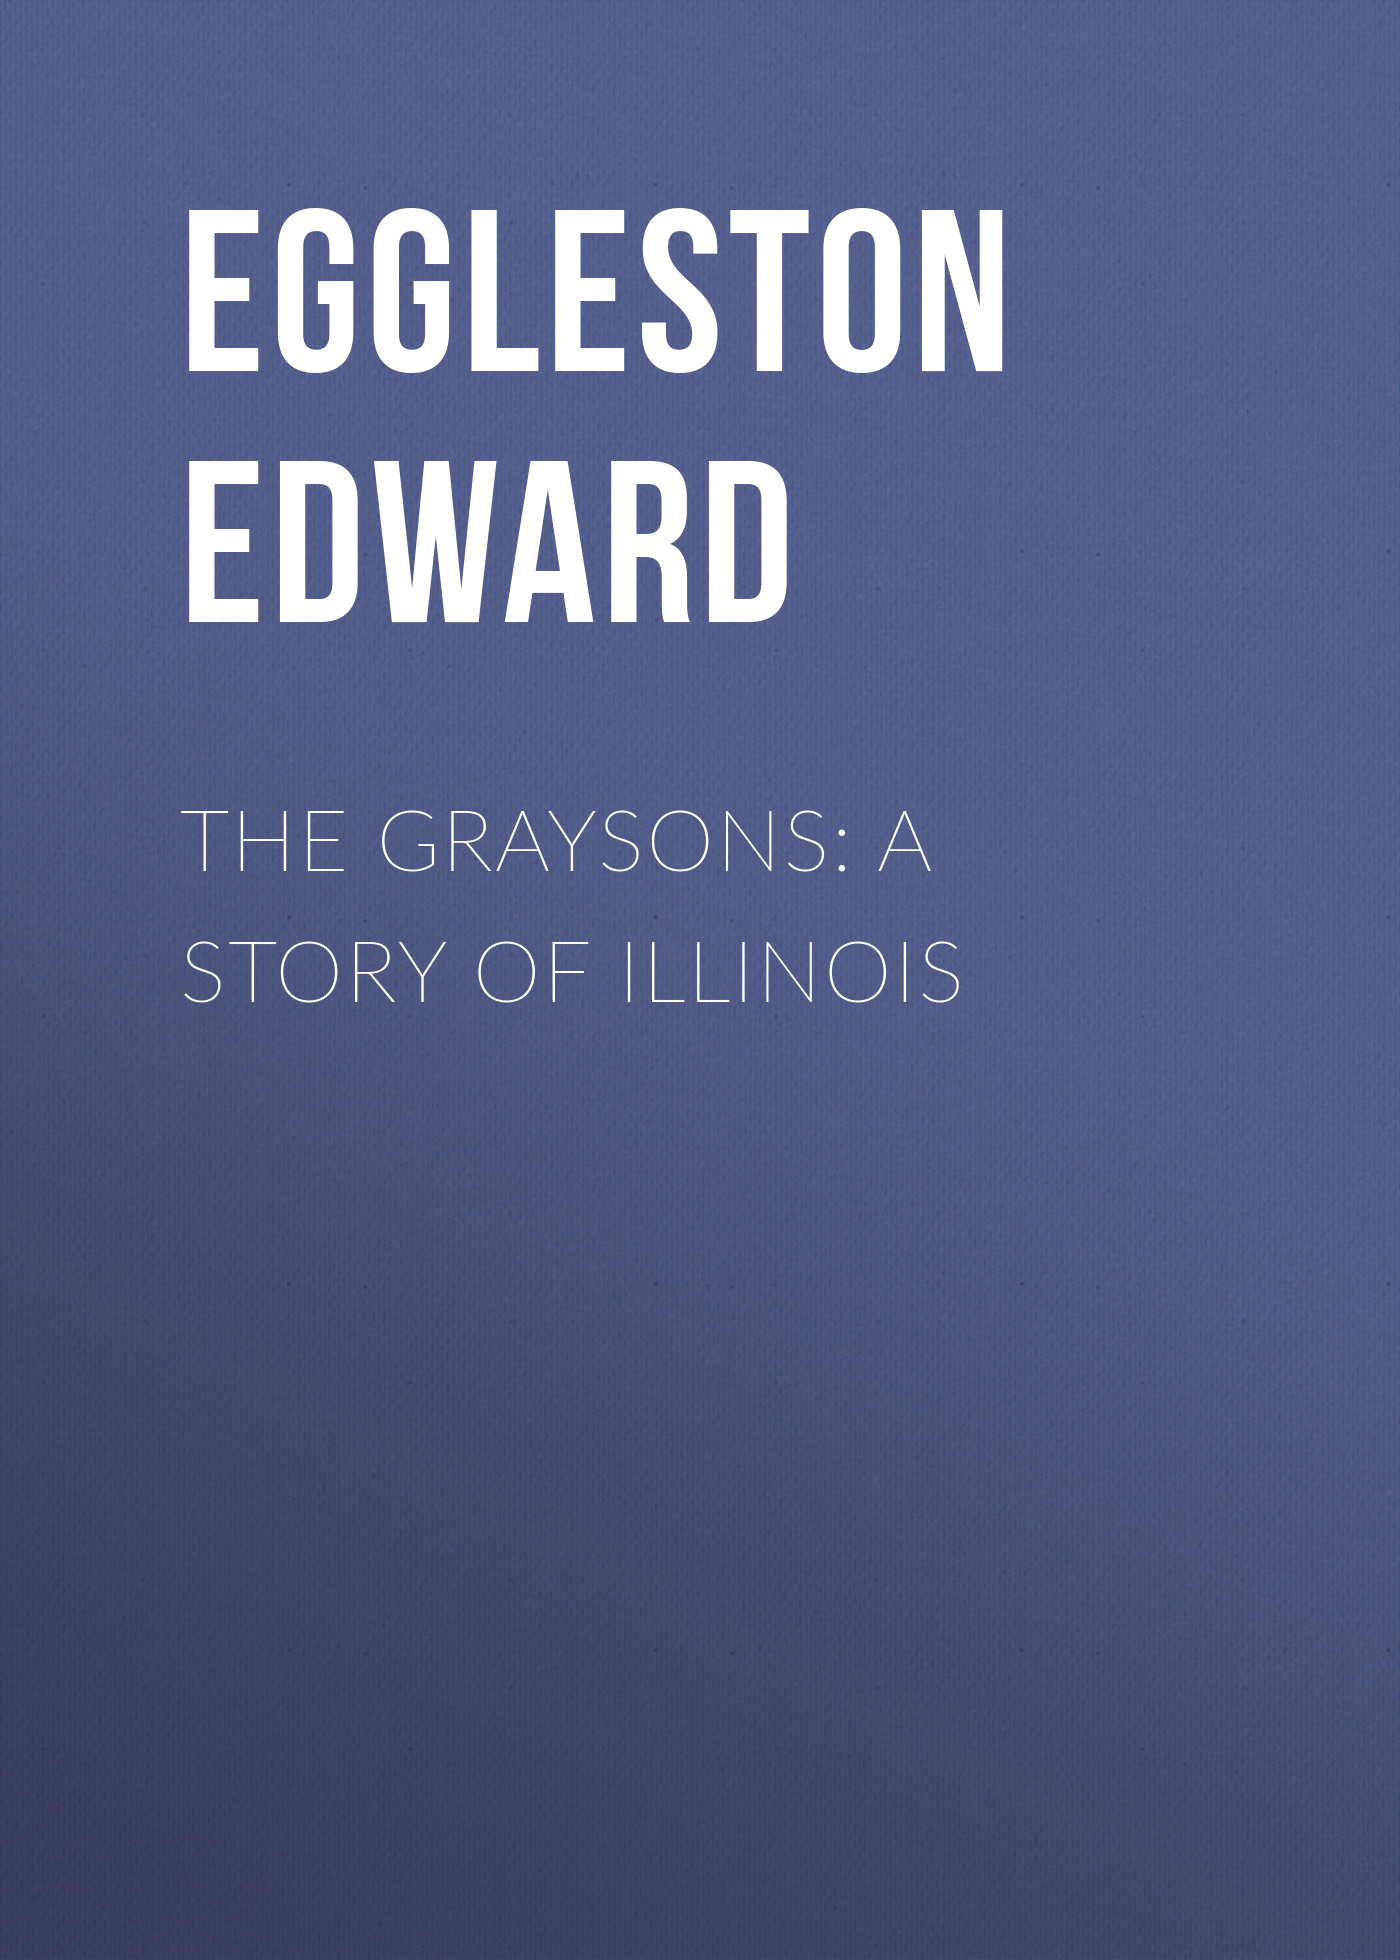 Eggleston Edward The Graysons: A Story of Illinois